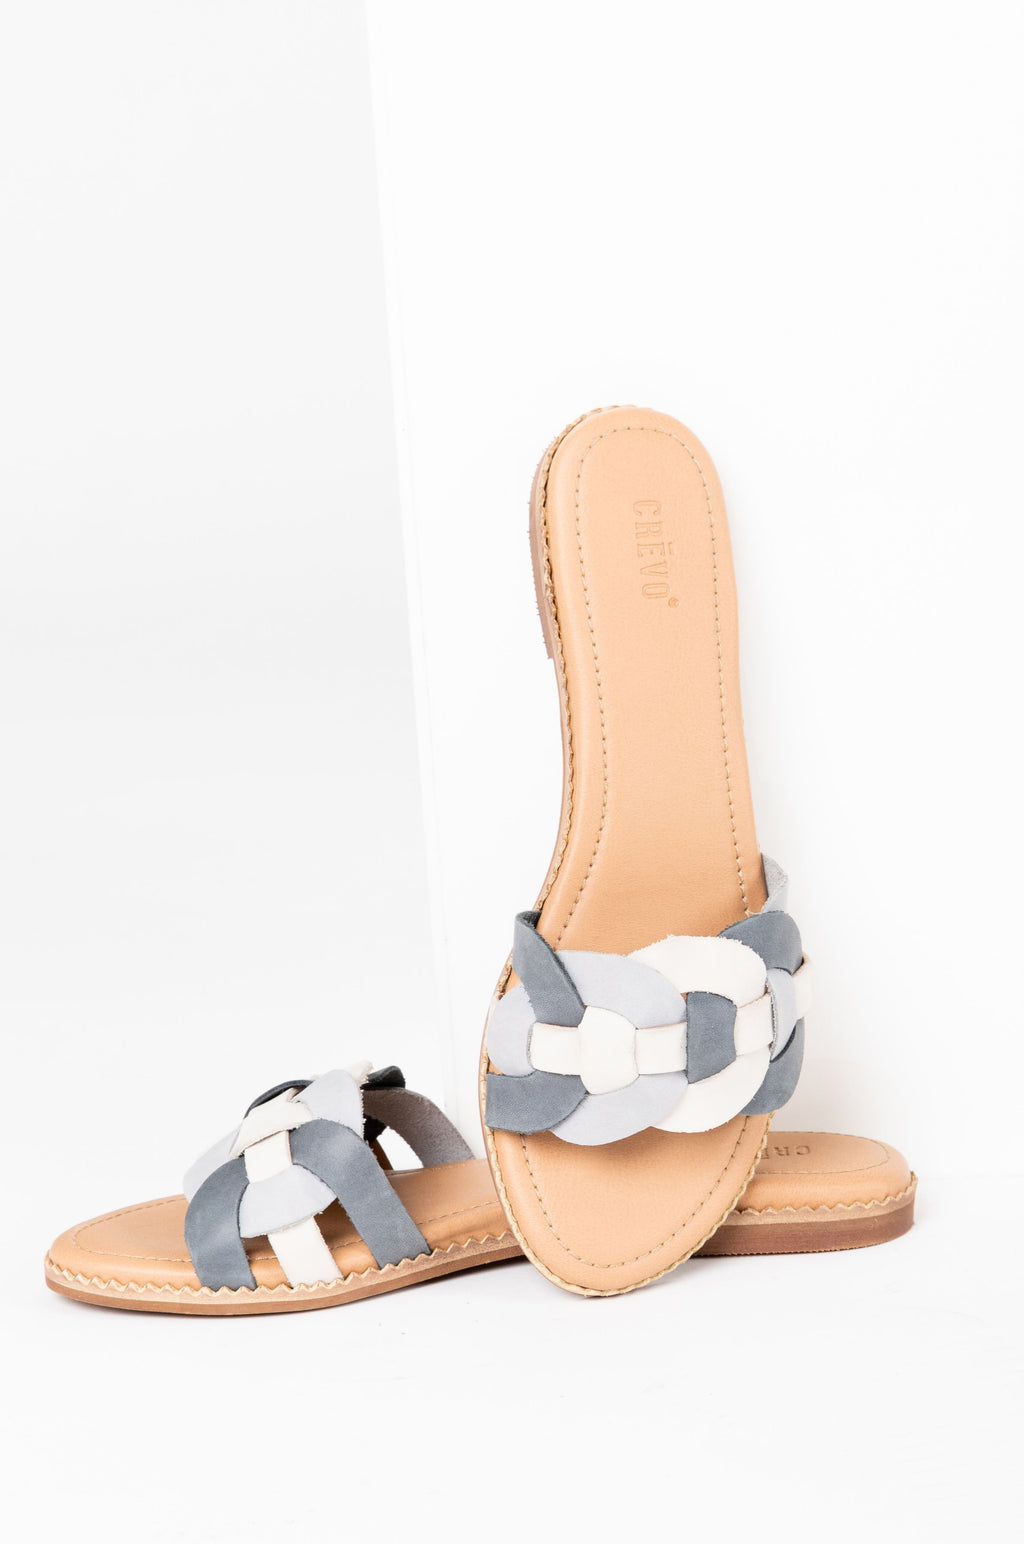 Crevo Footwear: The Poppi Slide Sandal in Dusty Blue, studio shoot; front view